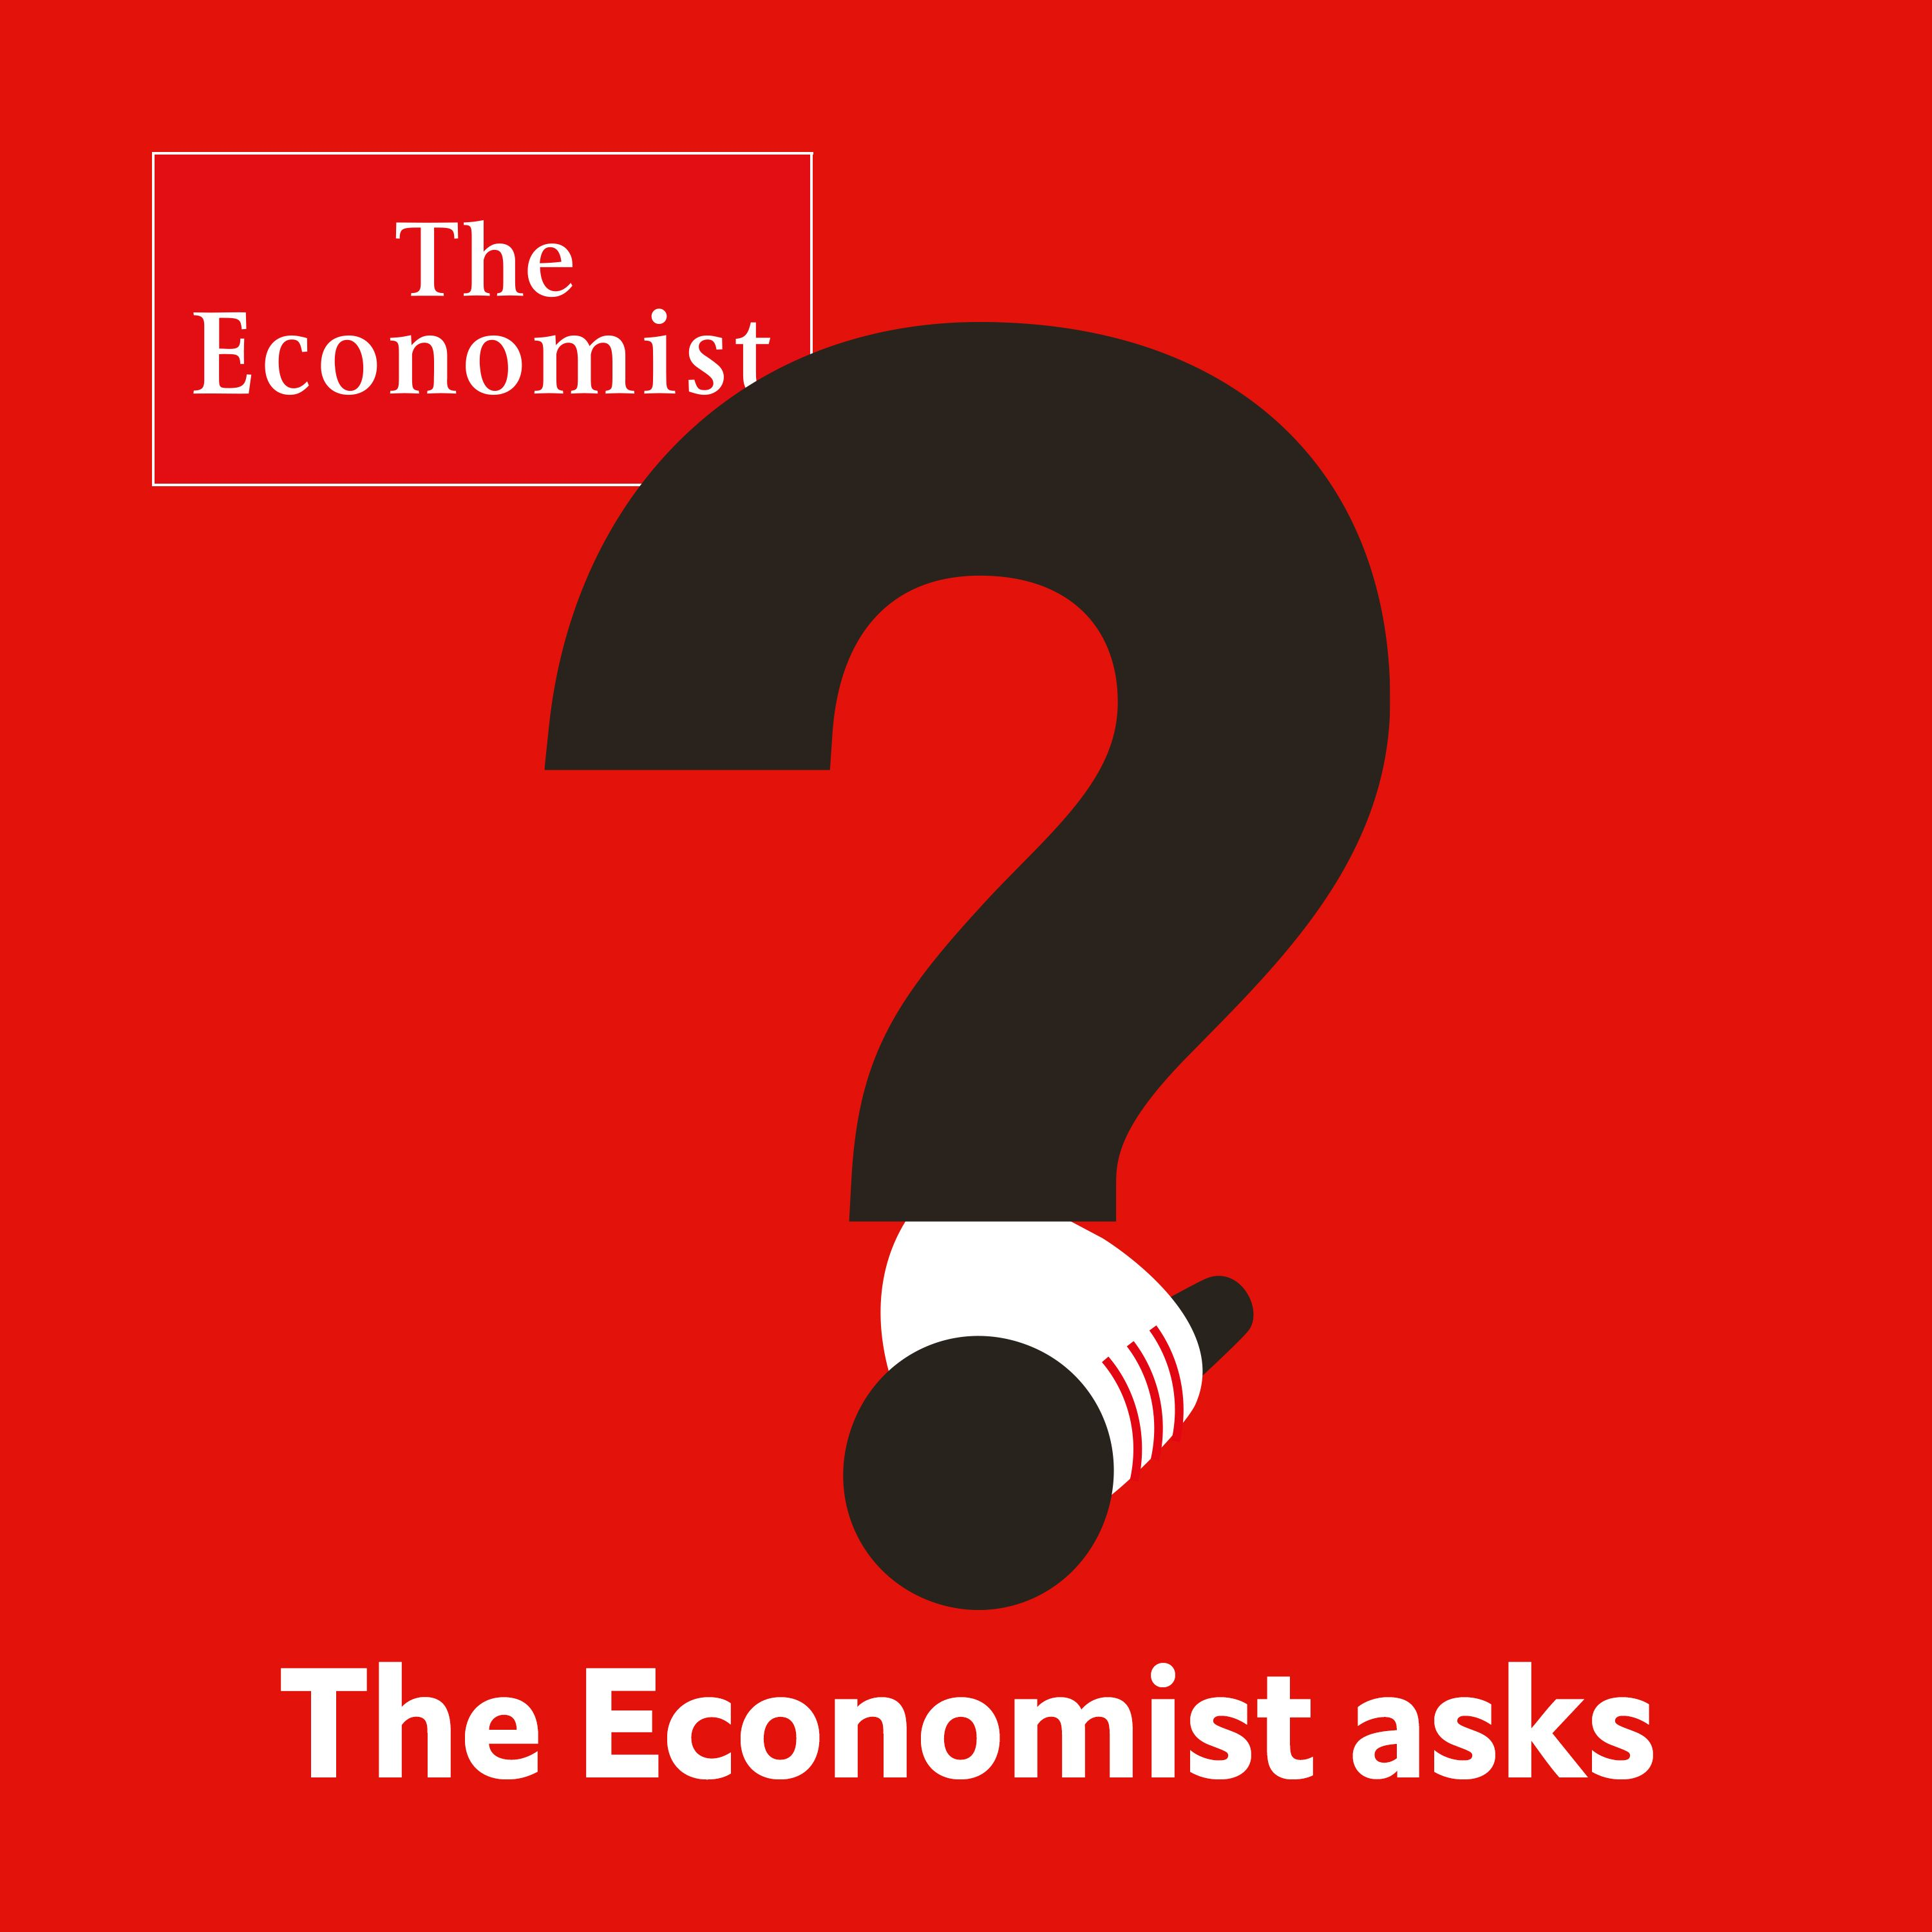 The Economist asks: What's the recipe for the restaurant of the future?